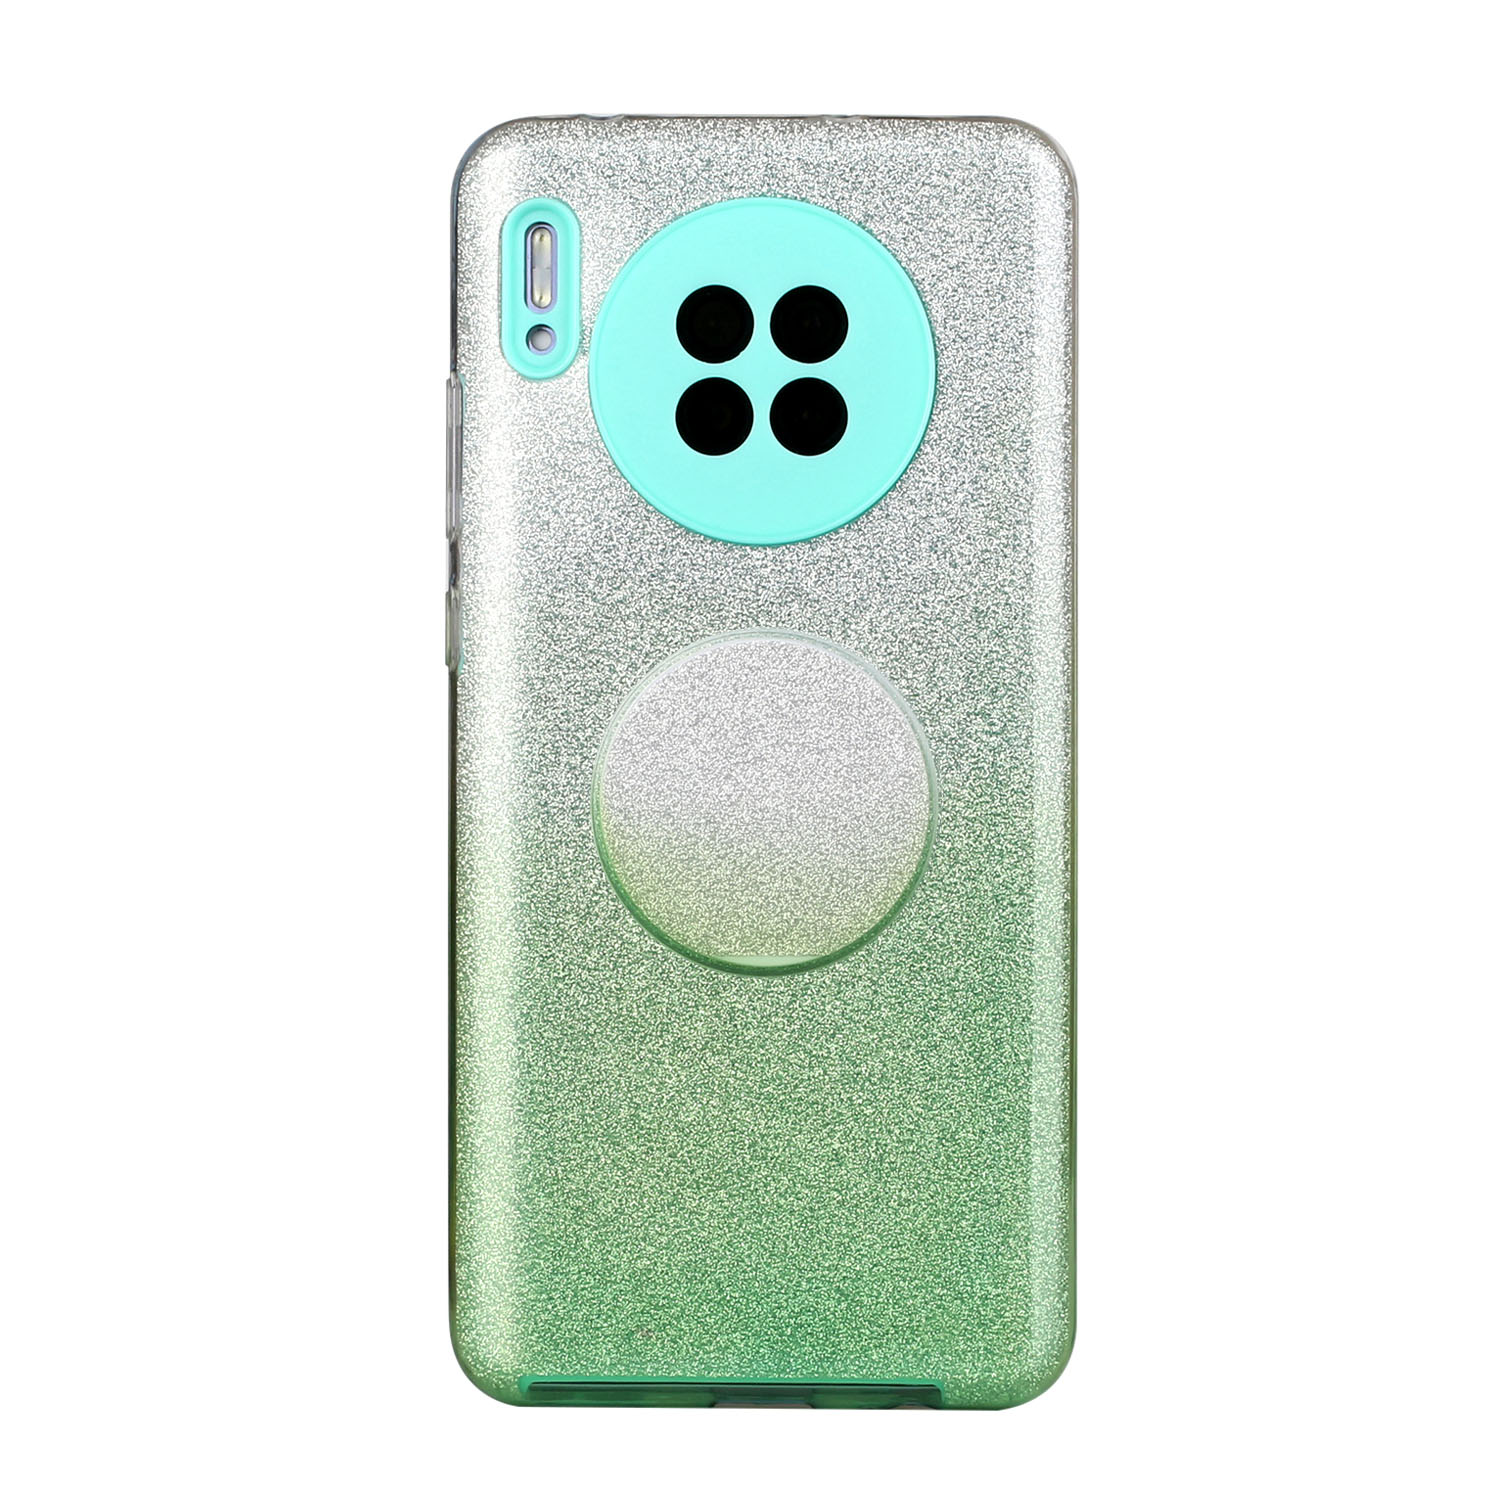 For HUAWEI Mate 30/Nova 5I pro/Mate 30 Pro/PSmart /Y5P/Y6P 2020 Phone Case Gradient Color Glitter Powder Phone Cover with Airbag Bracket green